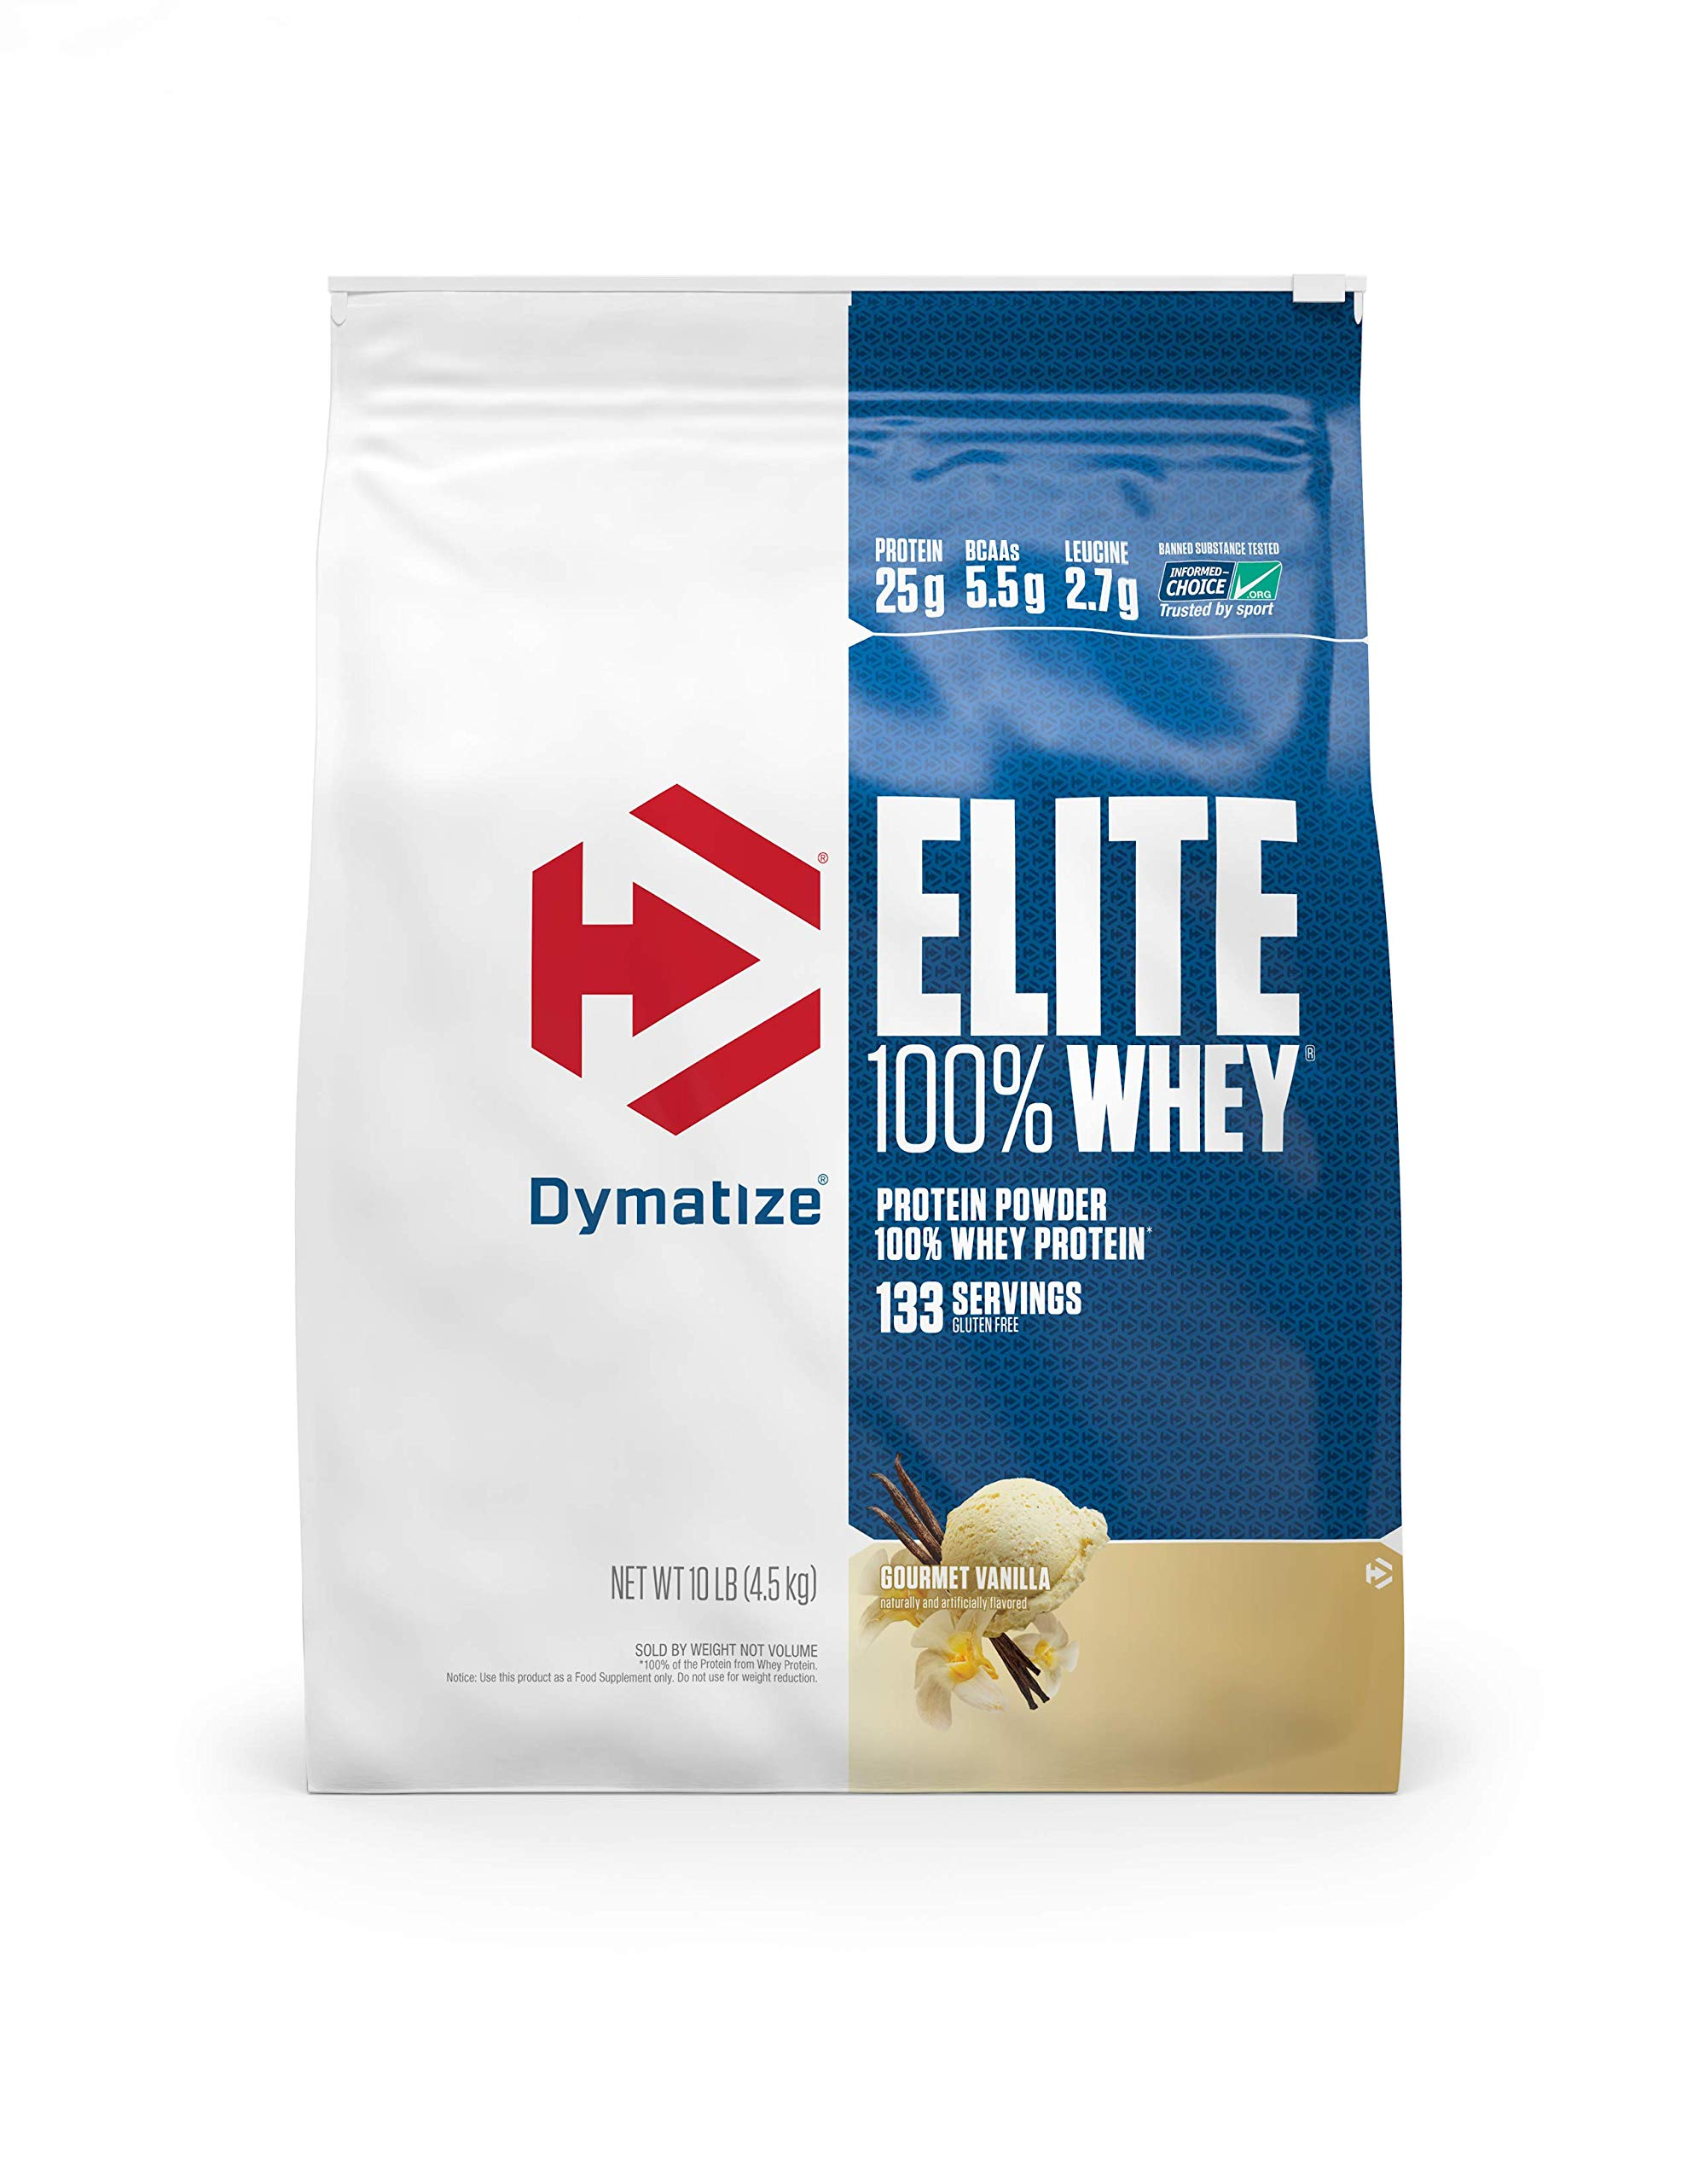 Dymatize Elite 100% Whey Protein Powder, Take Pre Workout or Post Workout, Quick Absorbing & Fast Digesting, Gourmet Vanilla, 10 Pound by Dymatize